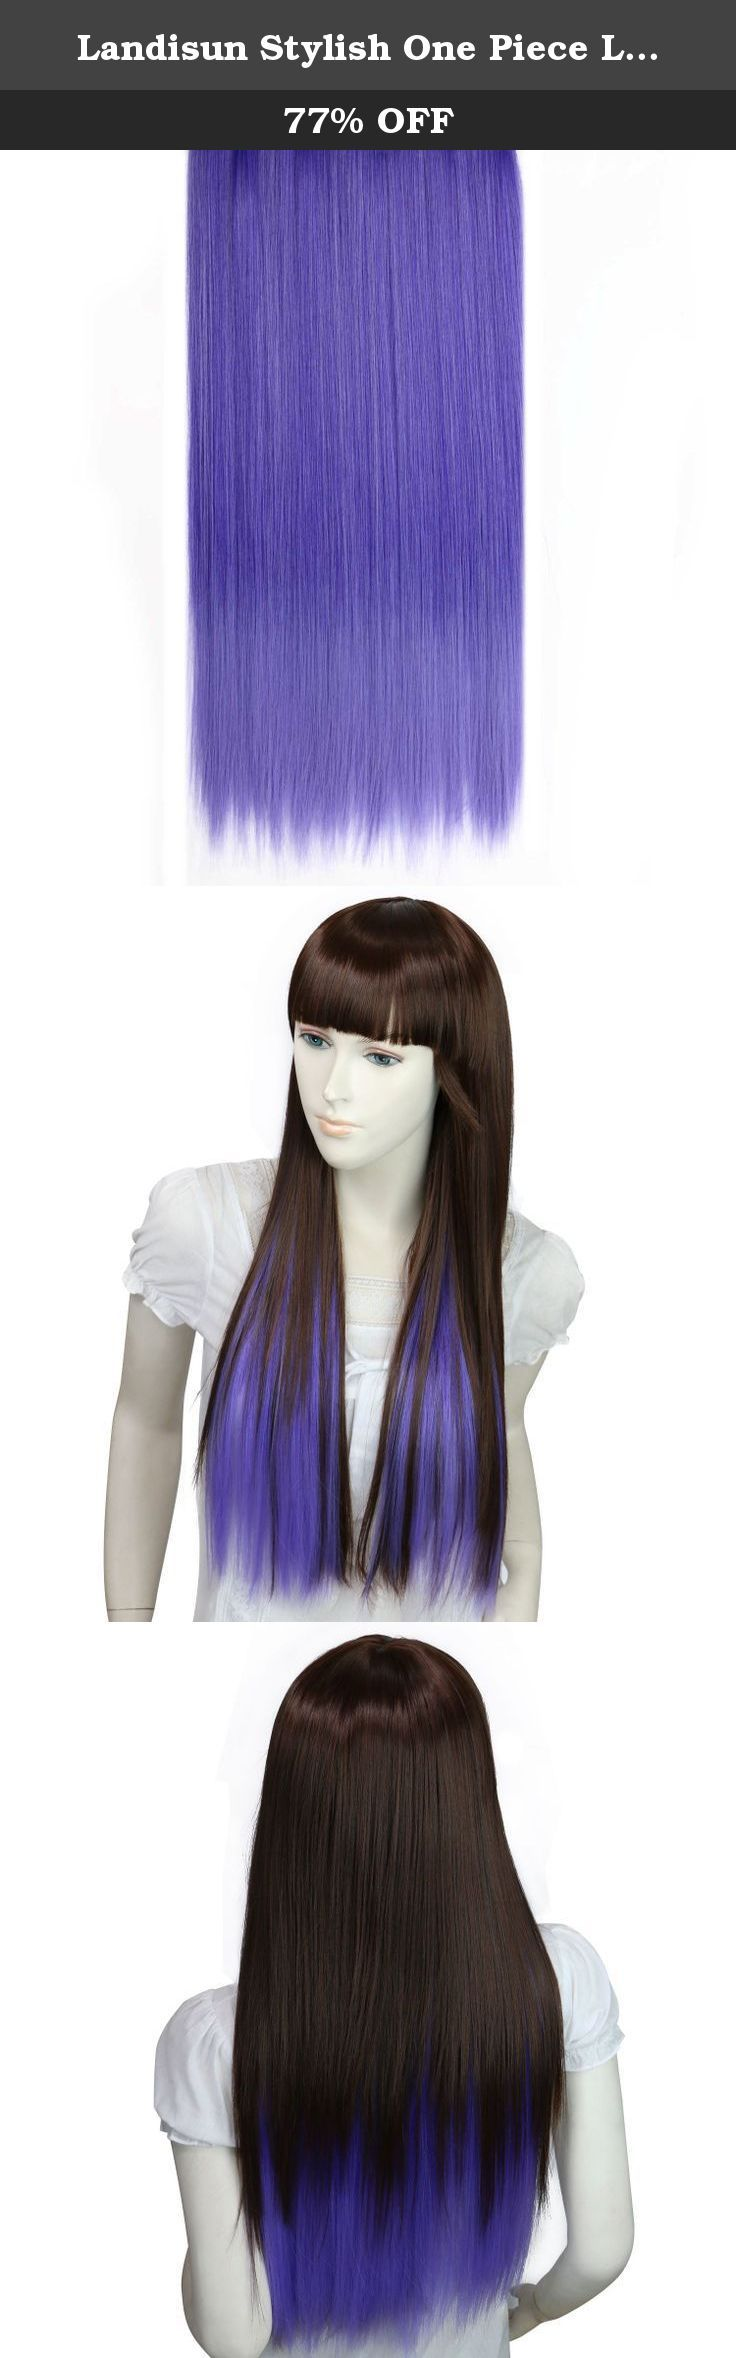 Landisun Stylish One Piece Long Curly/Straight Hair Extensions (5 Clip On) SN395 Straight Dark Purple Lavender. Landisun provides the best products on Amazon. We sell our products in 28 countries through Amazon Landisun wig features a high-quality which gives you a look of naturalness and reality. Landisun wig is Easy to wash and care just using a little mild shampoo in cold water. Landisun wig is made from 100% high quality material. You will be amazed by the quality. Wearing it, it can...